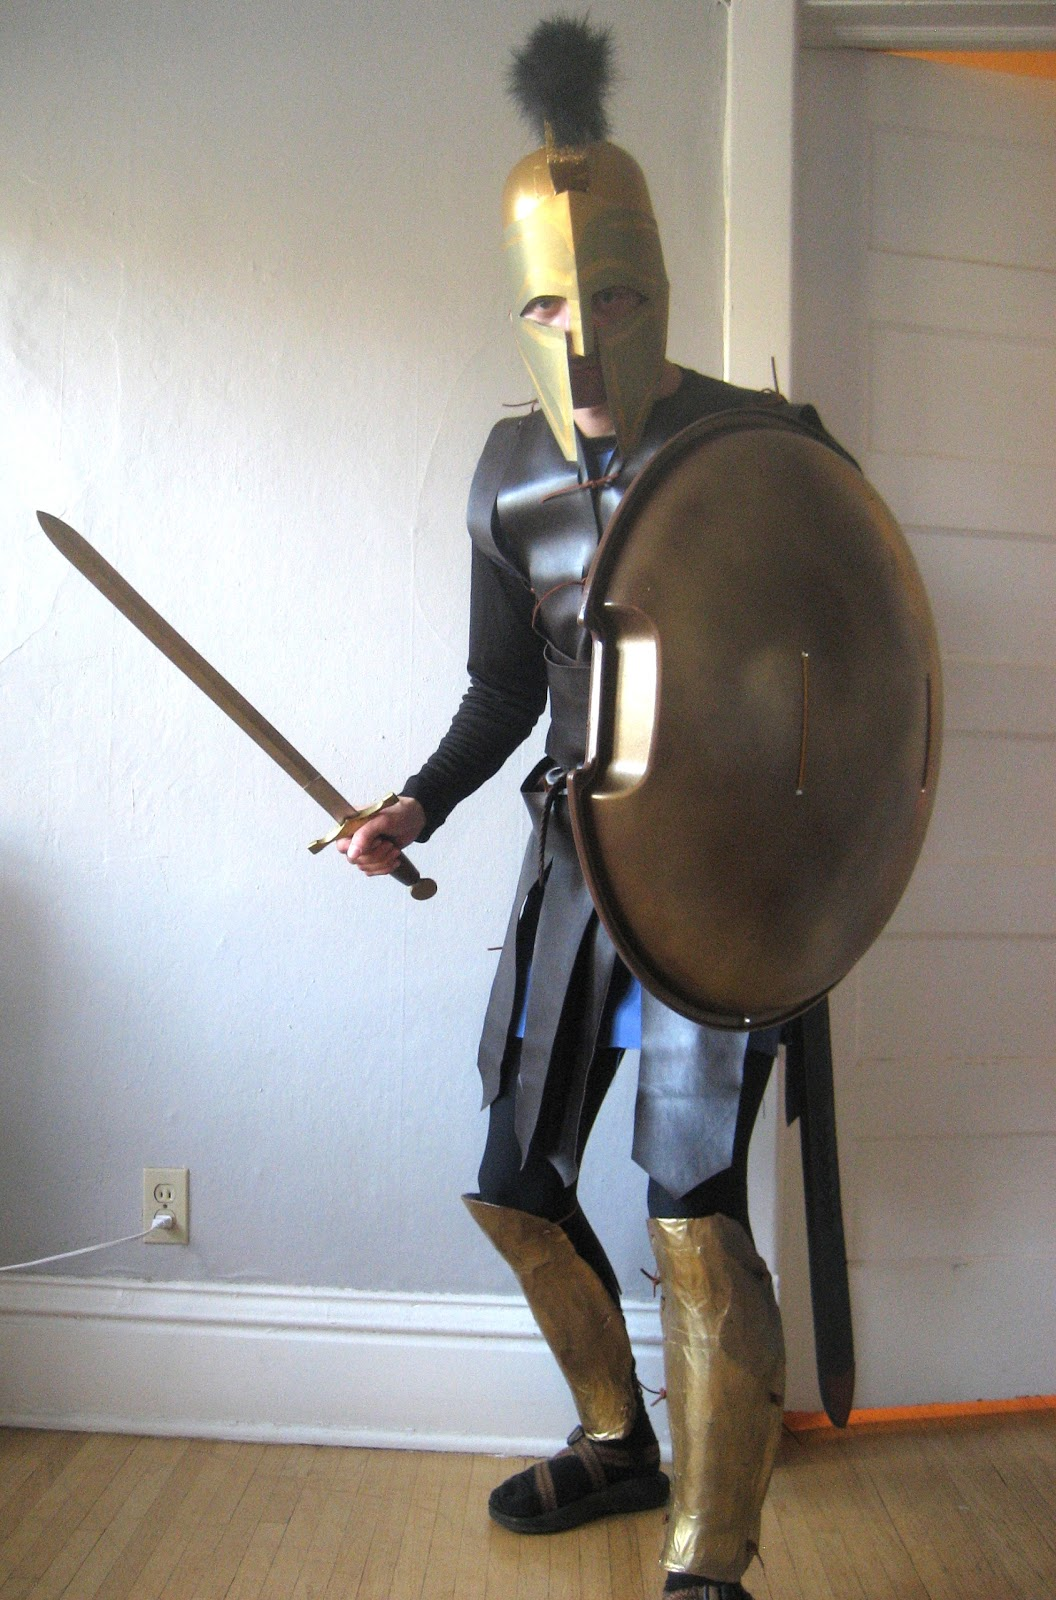 DIY Spartan Hoplite Costume How to make a faux-leather Linothorax inspired by Gladiator costume no sewing required! & Chuck Does Art: DIY Spartan Hoplite Costume: How to make a faux ...